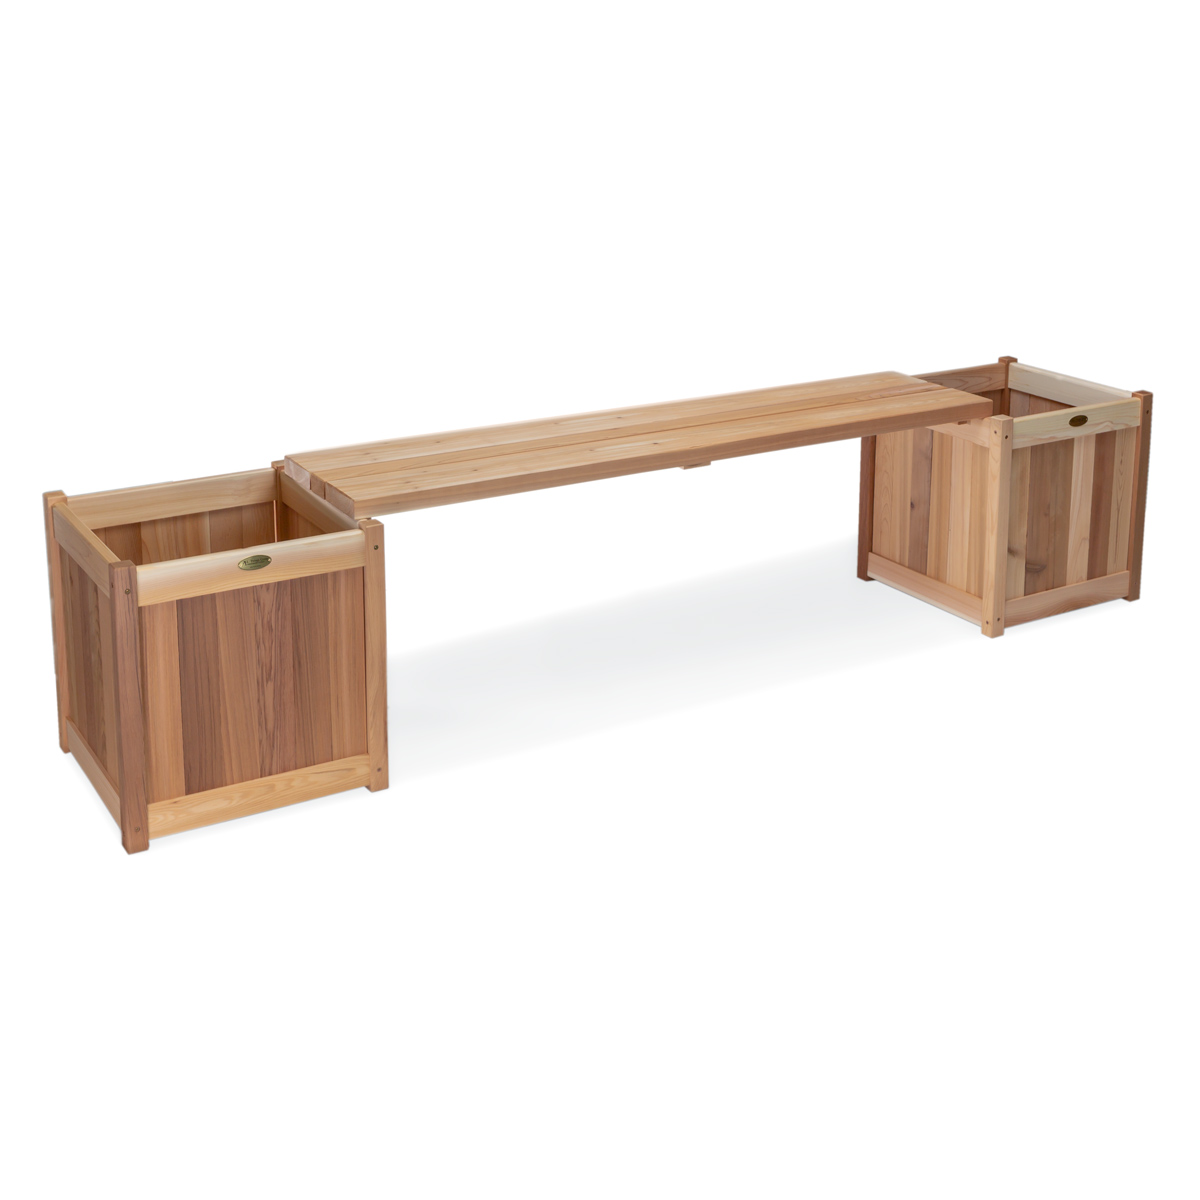 Wooden Planter With Benches By All Things Cedar Furniture